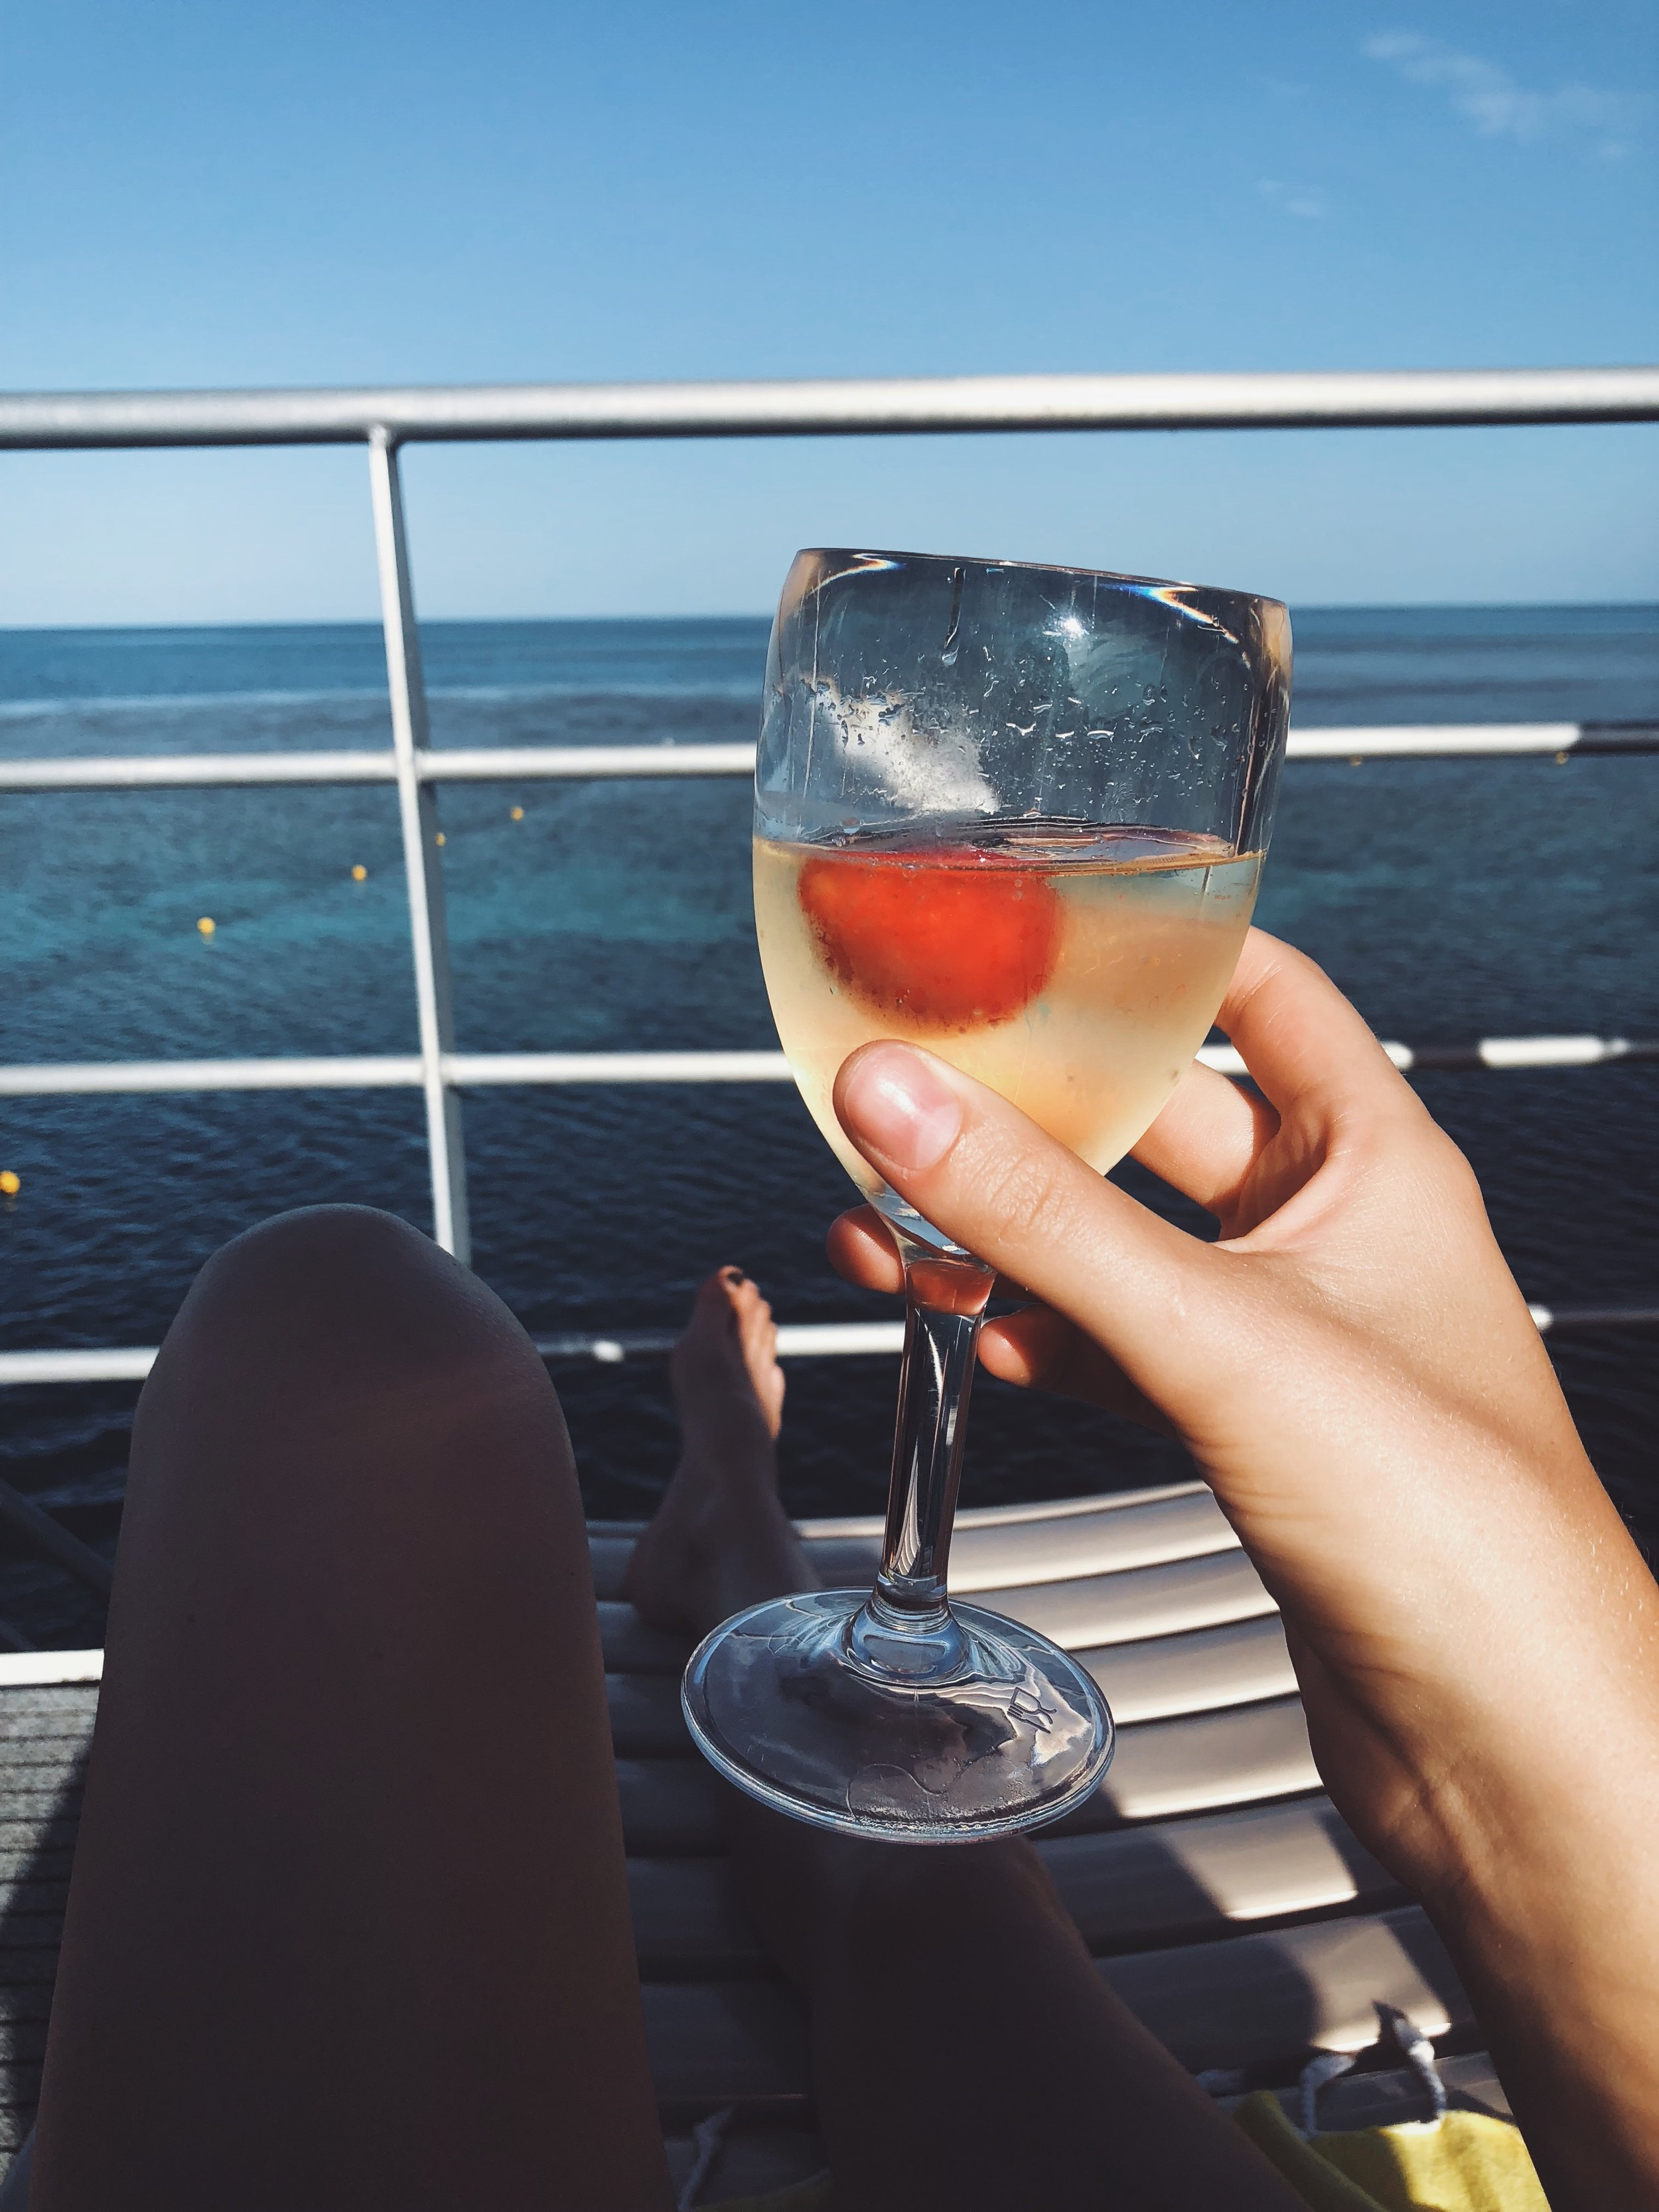 - The best part of the day was when the crowd loaded back up on the vessel, we popped a bottle of prosecco, and princess waved as the boat sailed away and left us alone on the pontoon in the middle of the ocean!